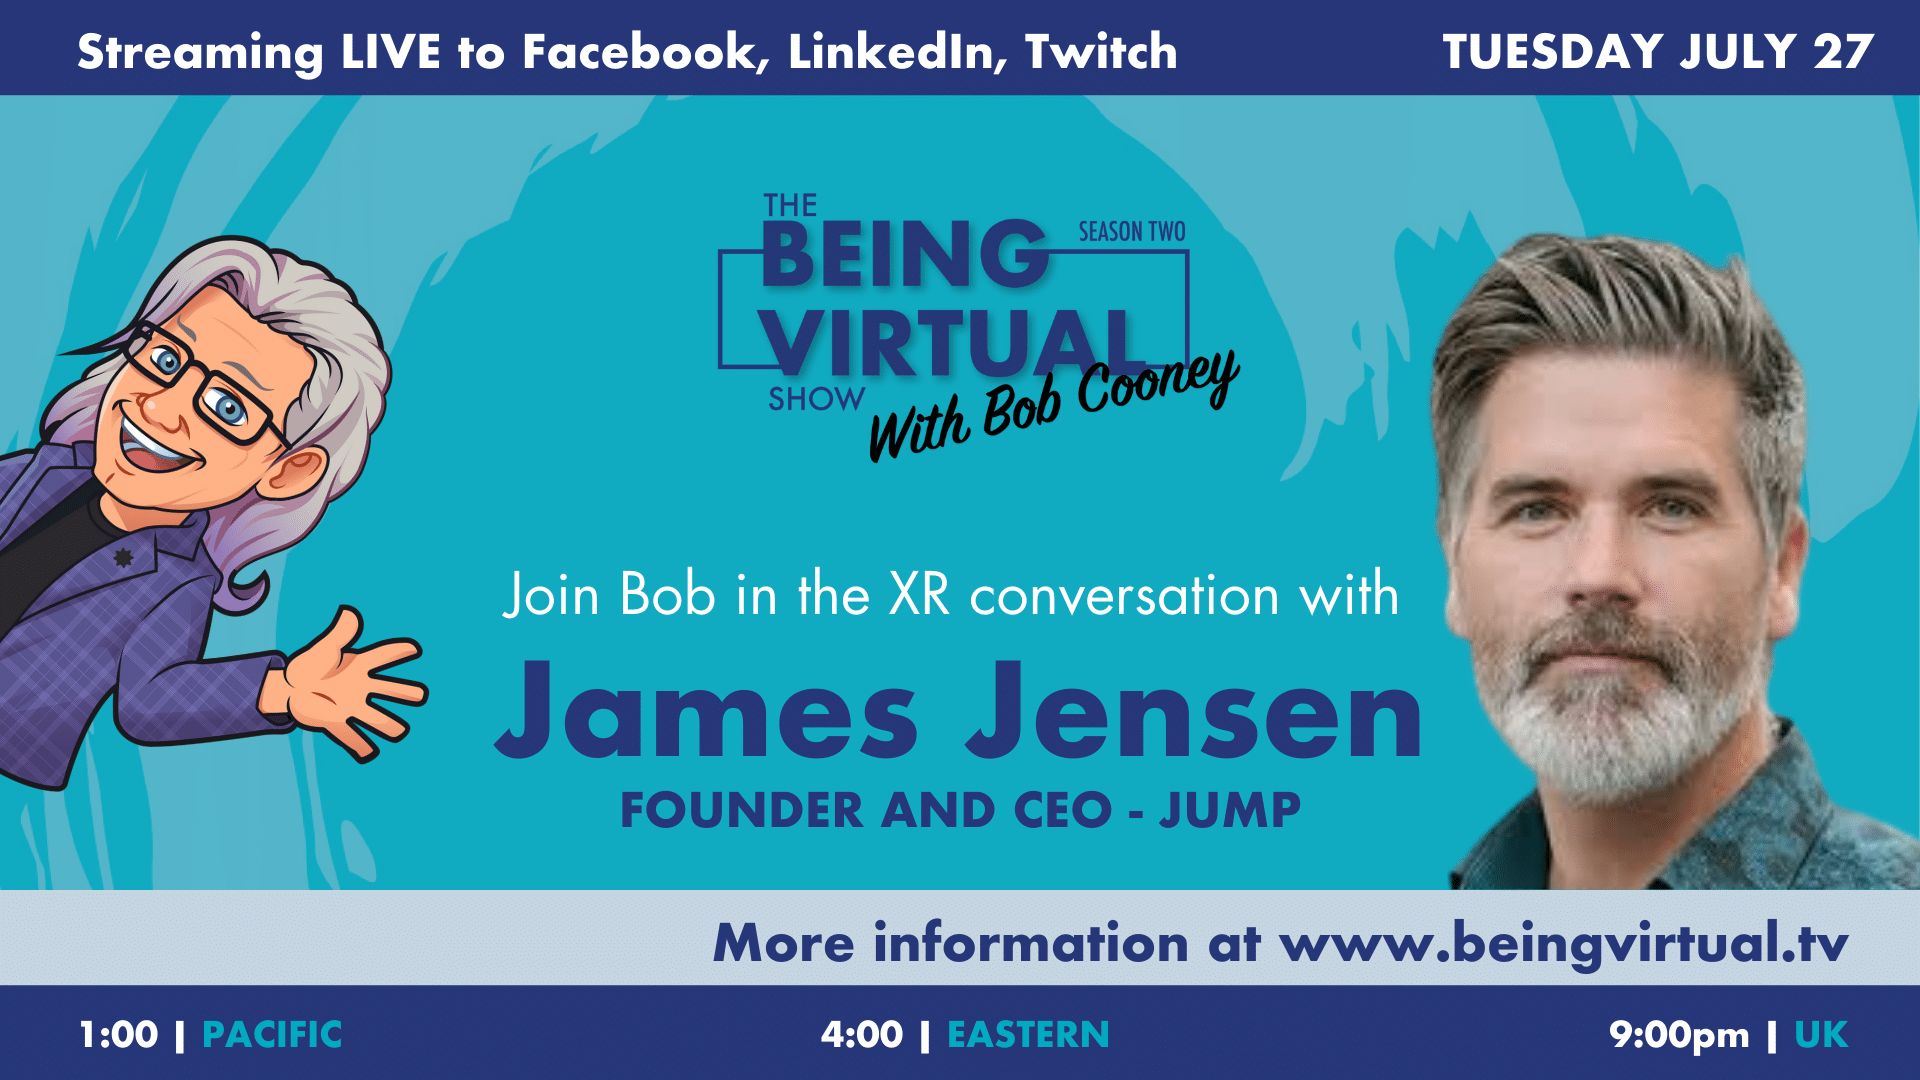 James Jensen Makes the JUMP to Create a VR Wingsuit Flying Attraction (1:15:45)